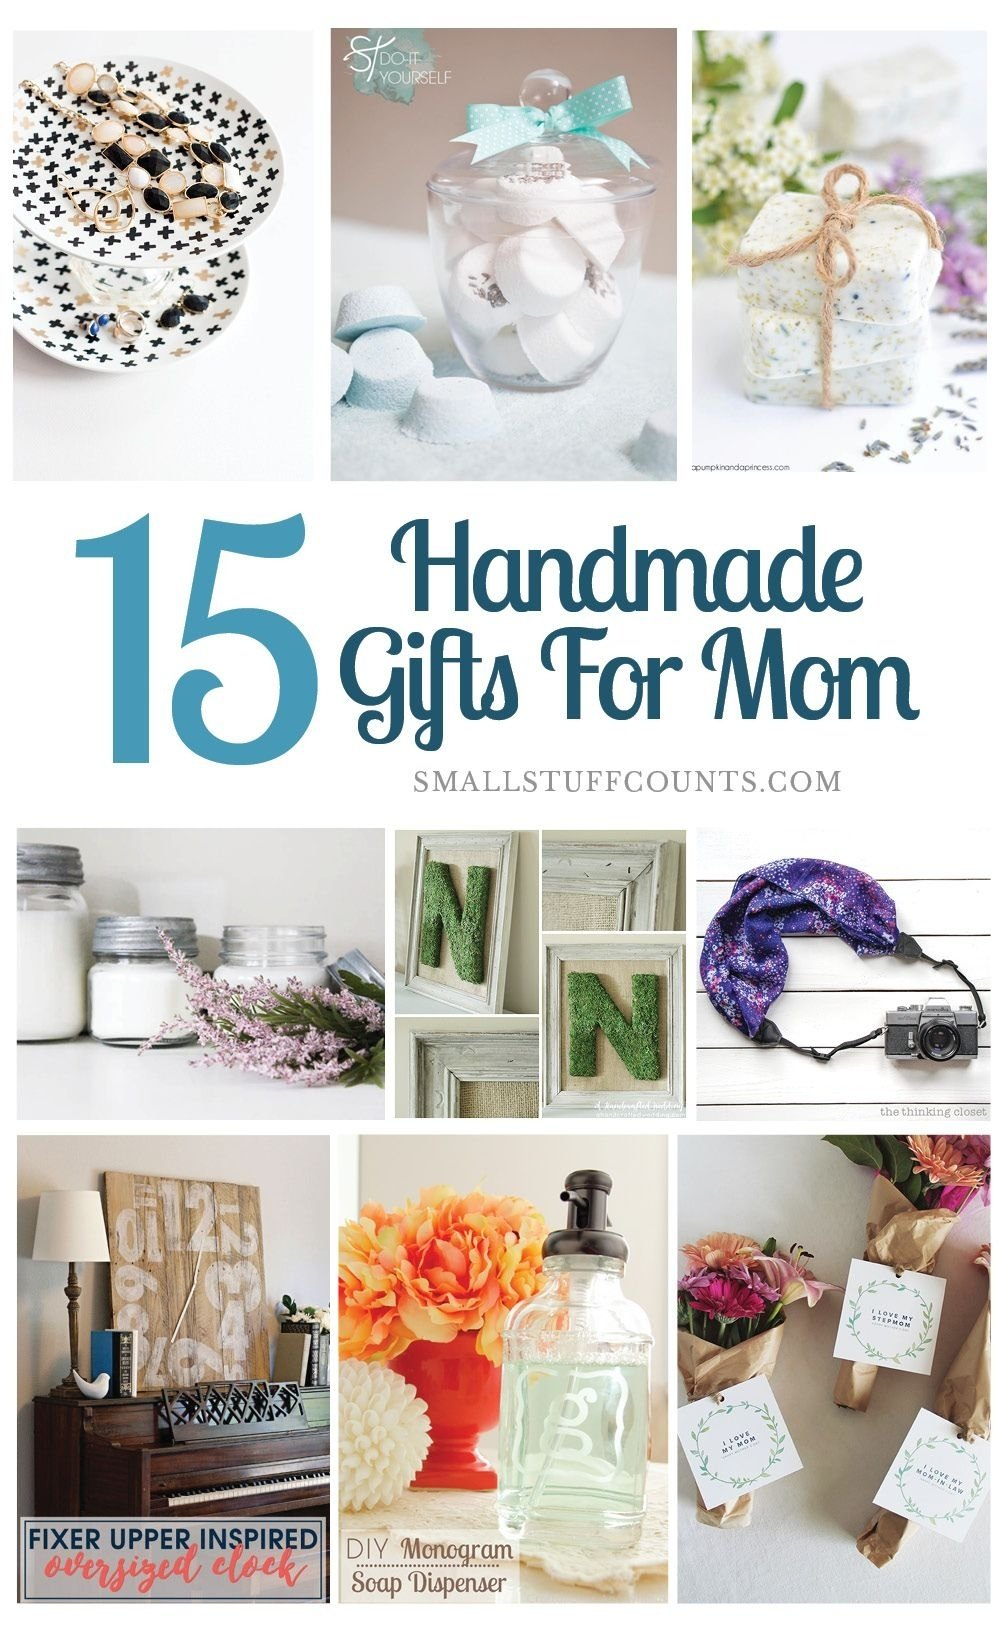 10 Beautiful Christmas Gift Ideas For Mom beautiful diy gift ideas for mom gift